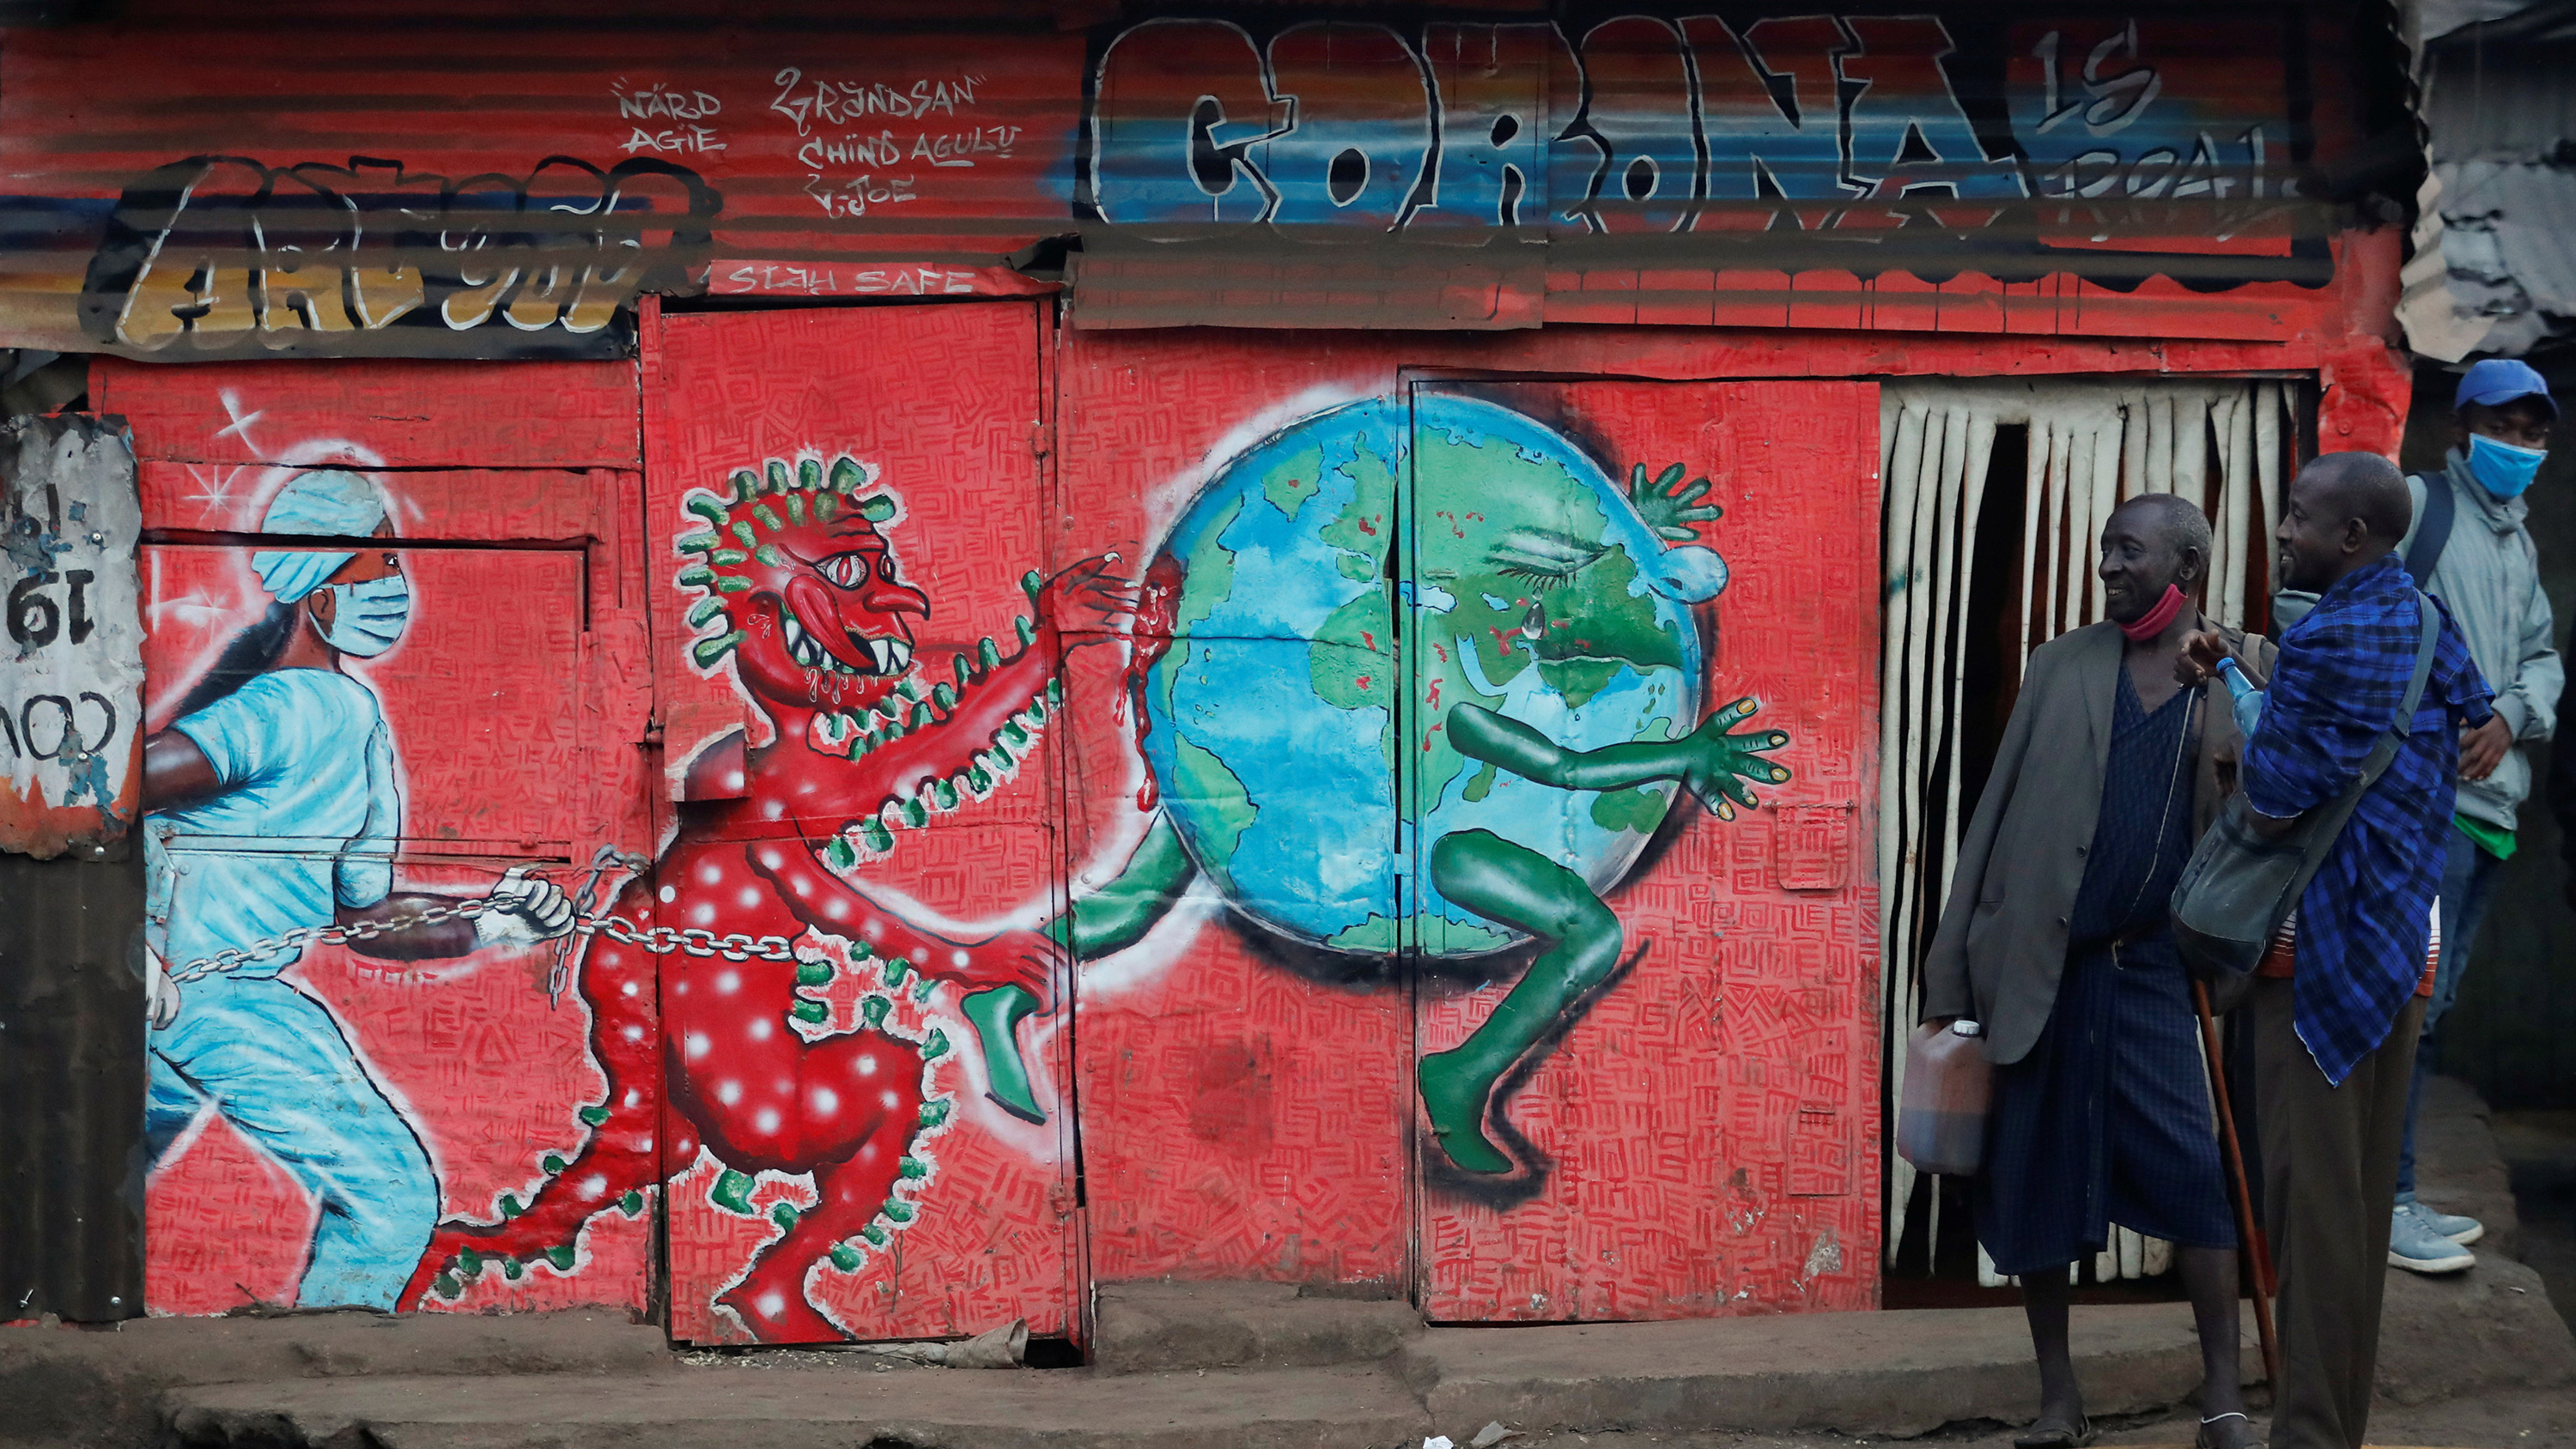 The photo shows a few people milling ablut the entrance of a building on the side of which is painted a mural with a red figure representing the personification of coronavirus chasing a globe while a nurse follows behind in hot pursuit.